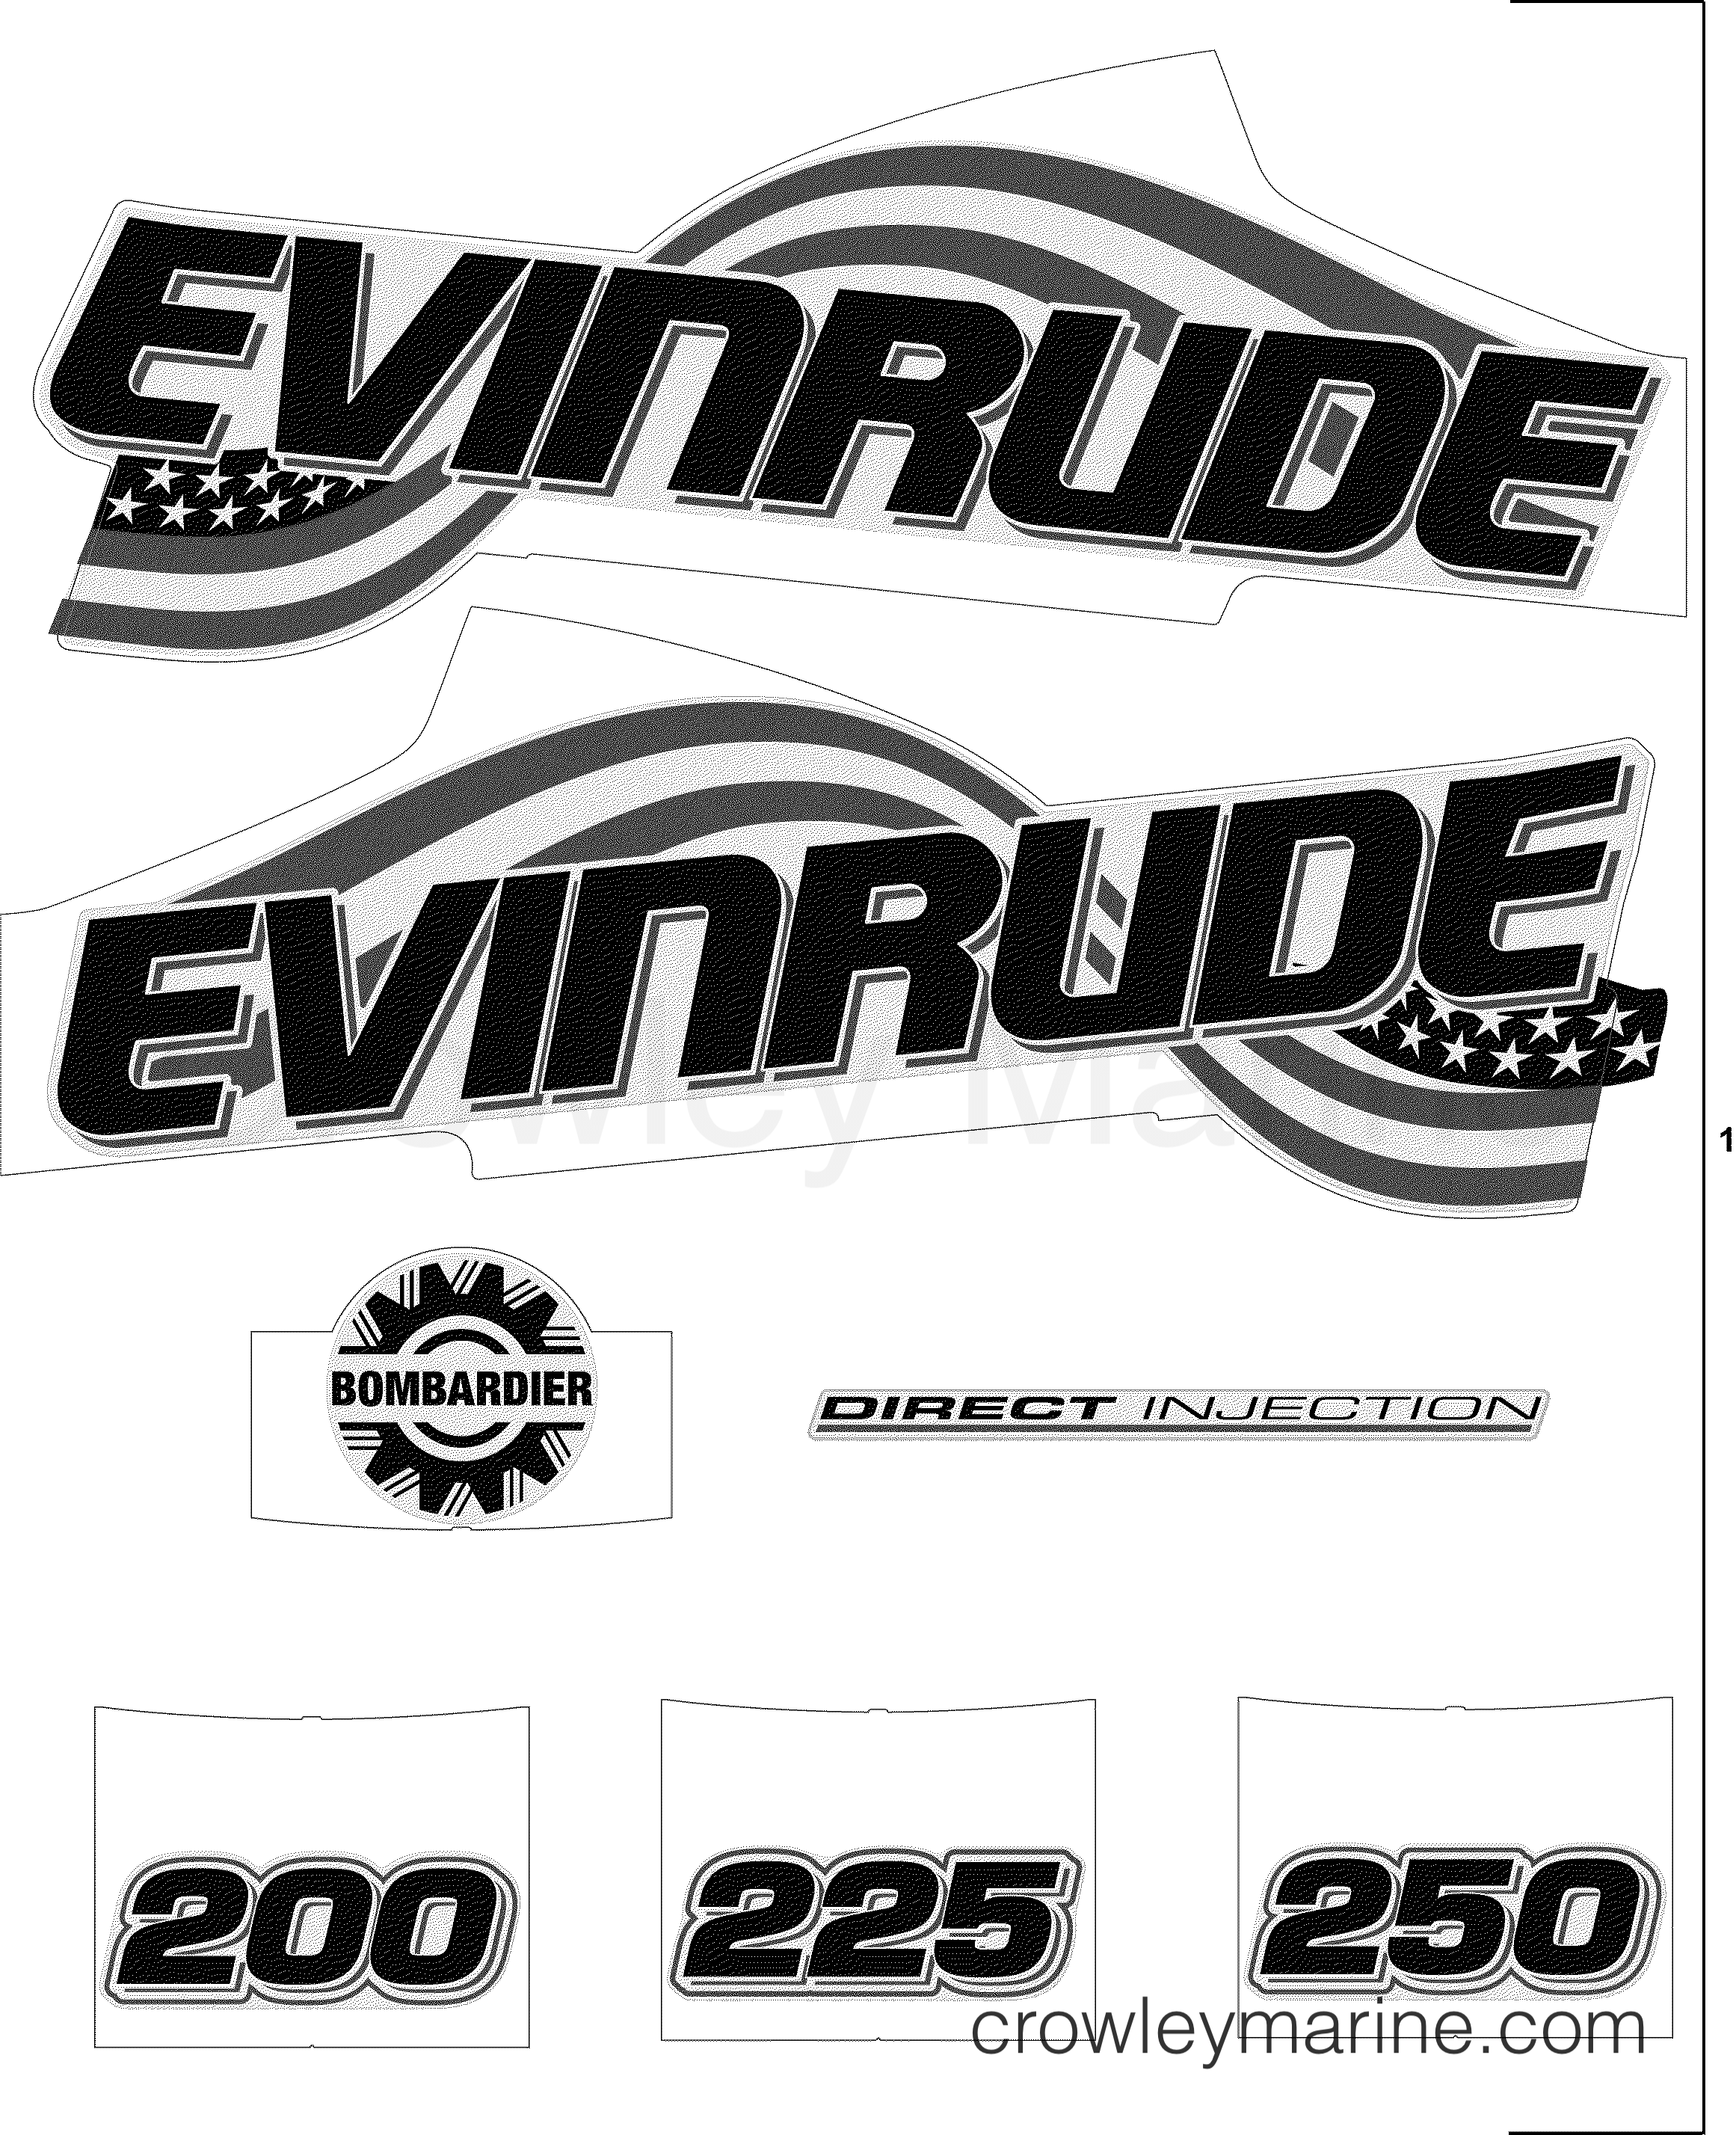 2005 Evinrude Outboards 200 - E200FCXSOE DECAL ACCESSORY SET - WHITE MODELS section